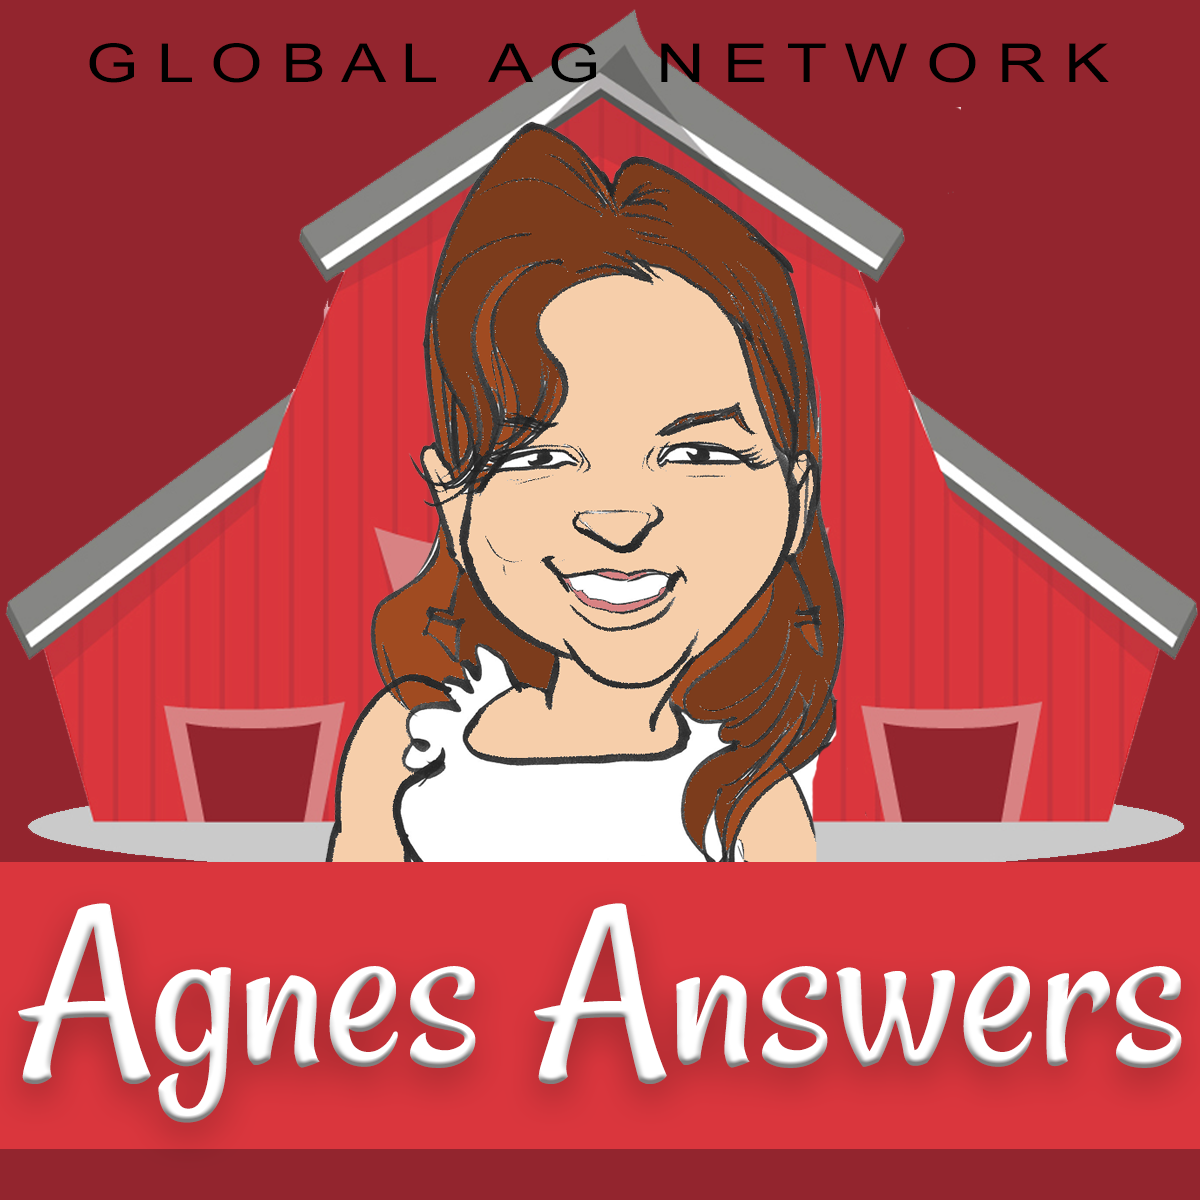 Agnes-Answers_draft_Barn EK2